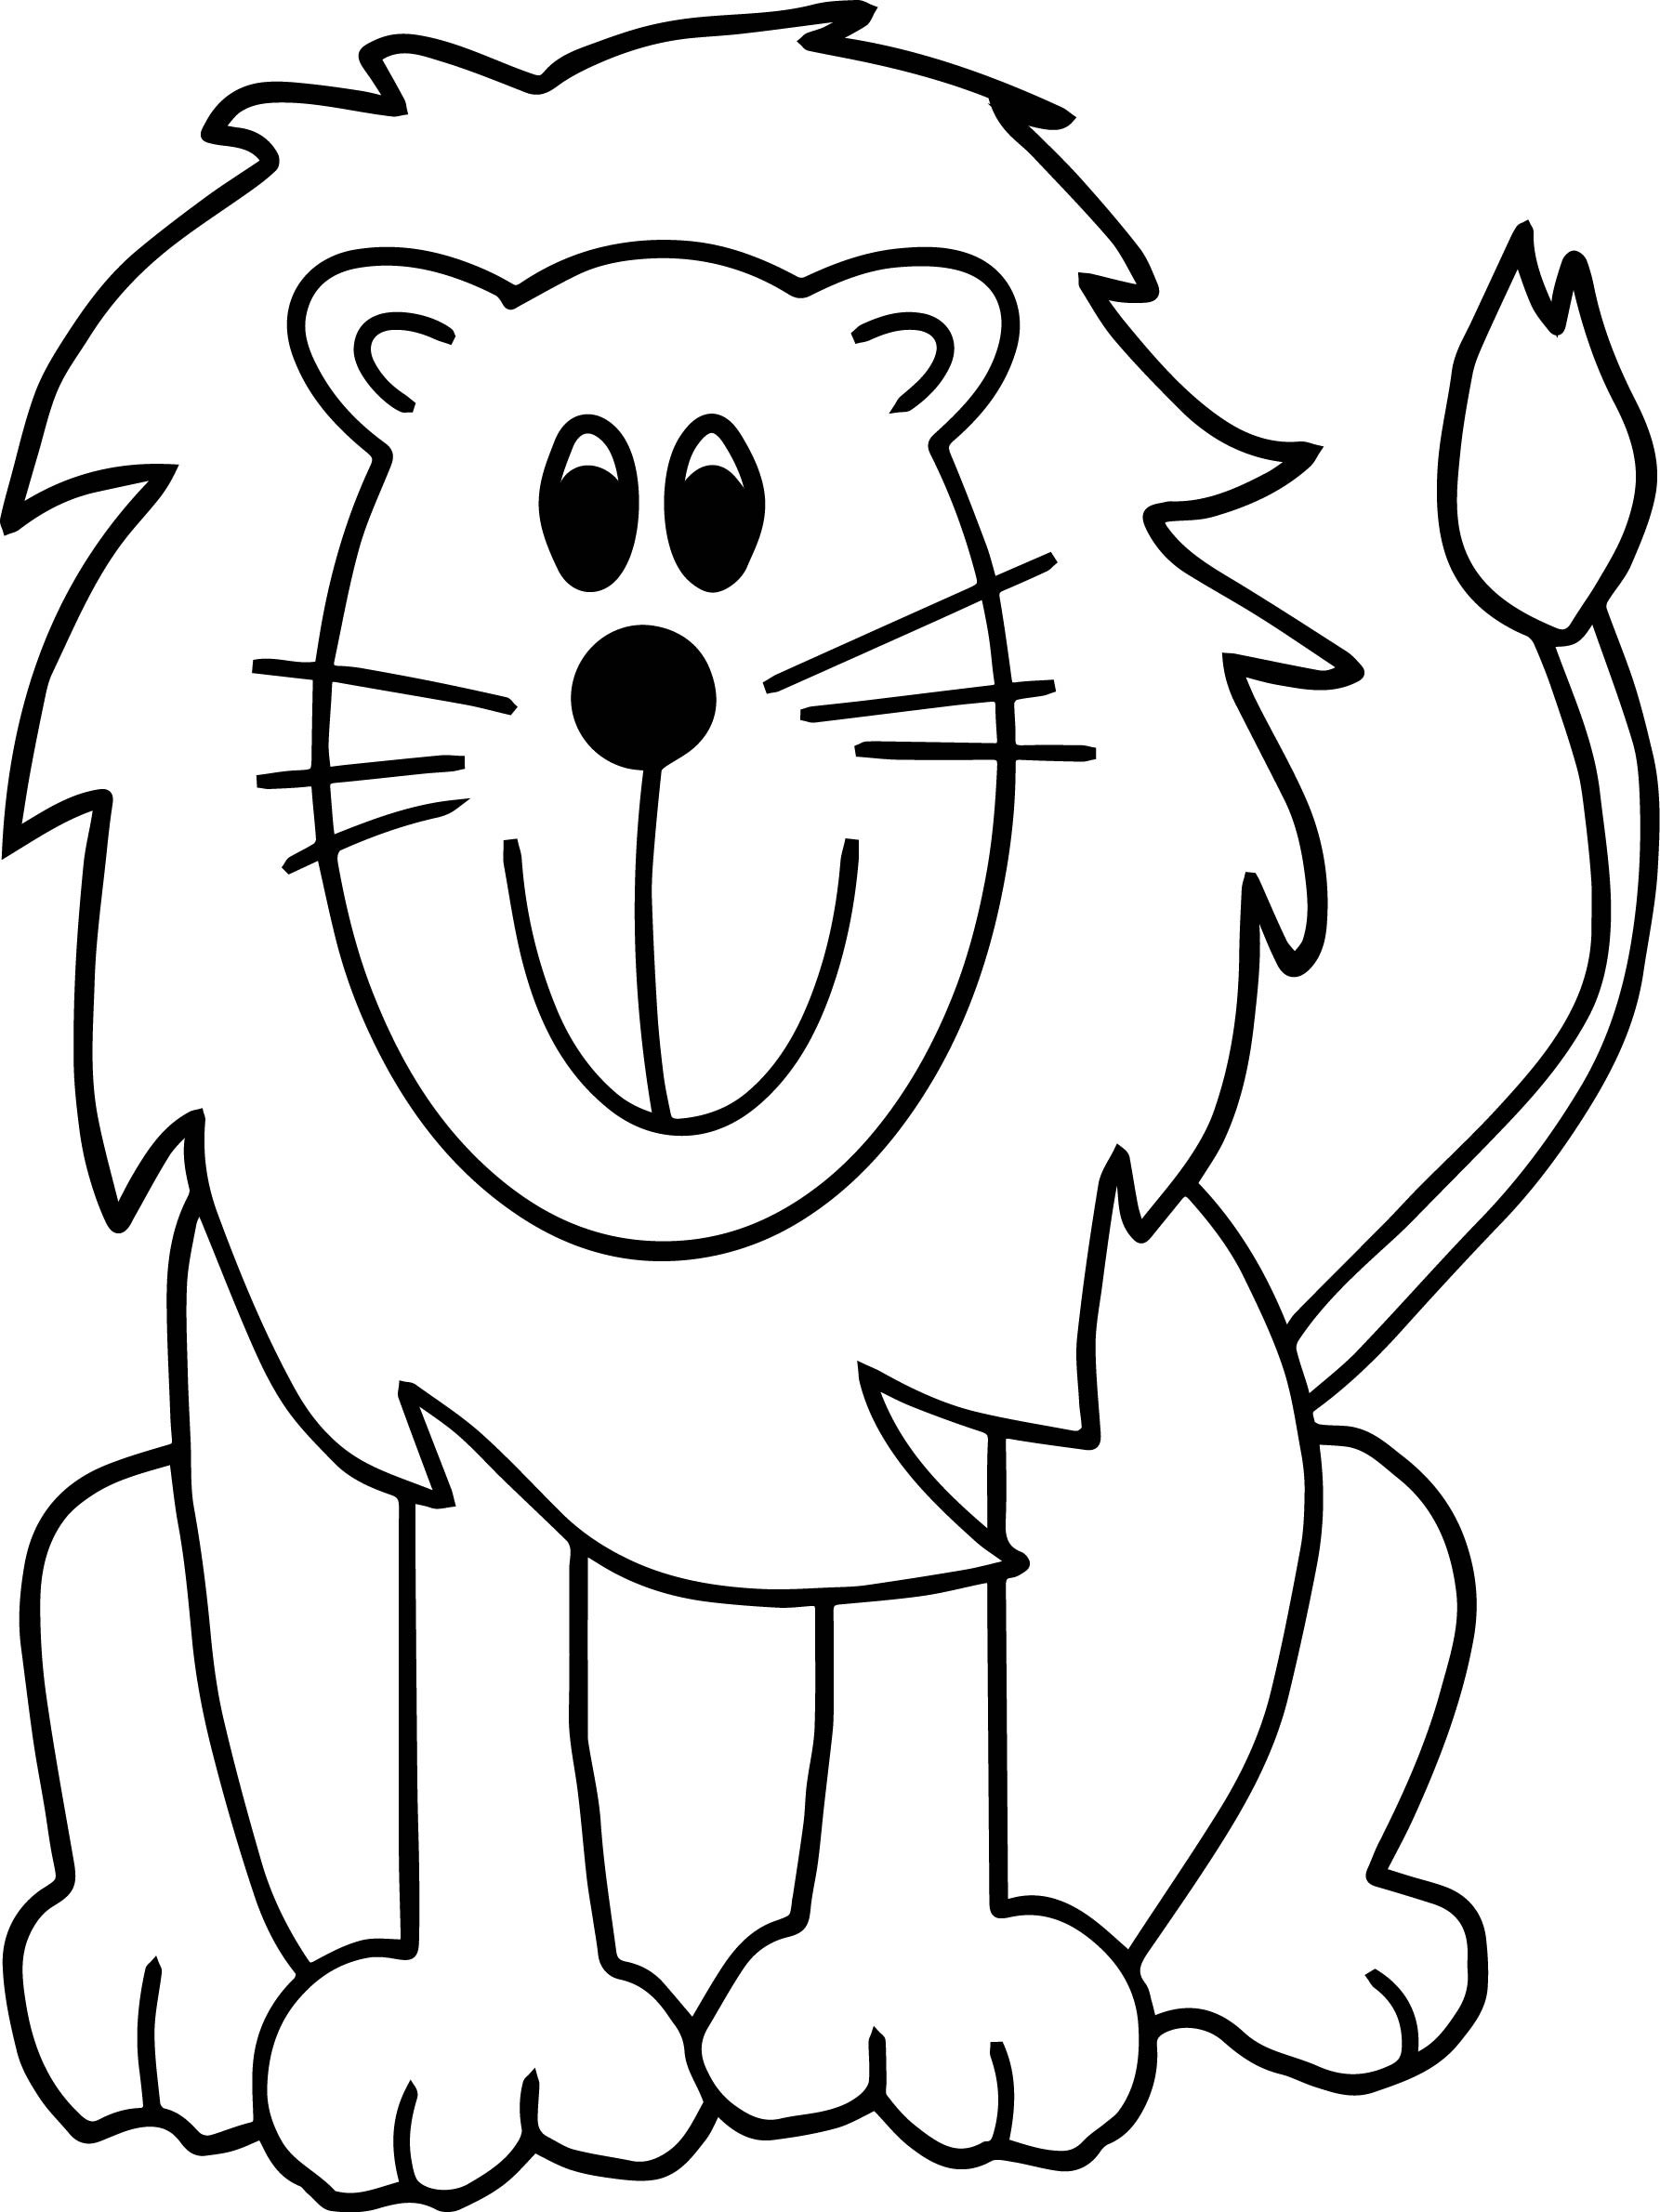 zoo animal coloring sheets we love being moms a z zoo animal coloring pages coloring zoo animal sheets